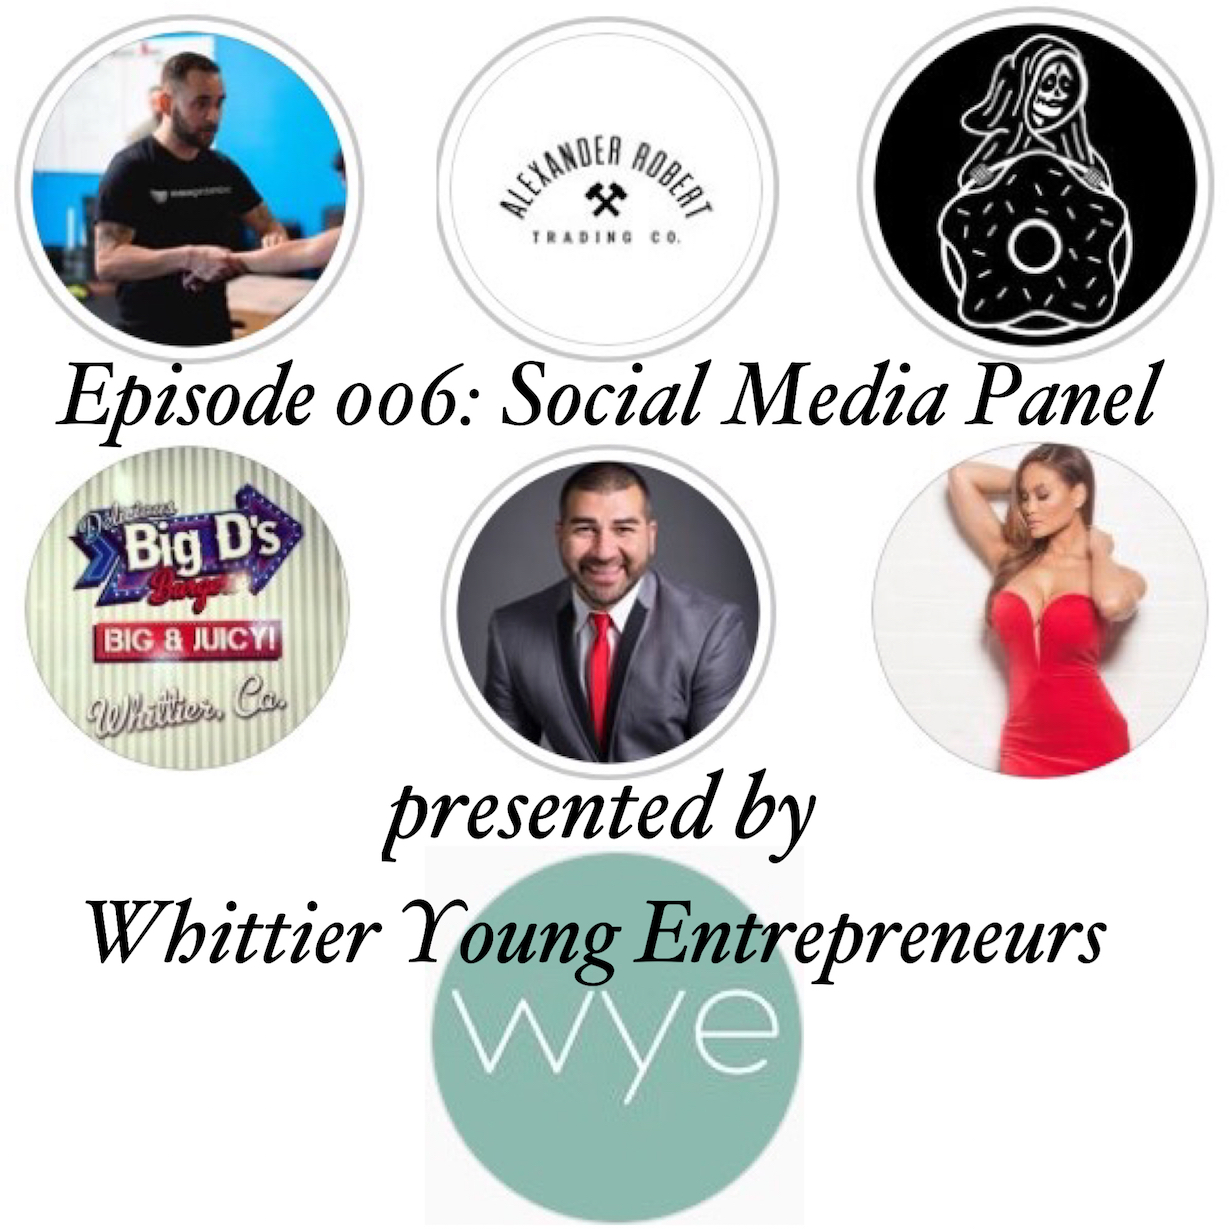 Episode 06: SOCIAL MEDIA PANEL presented by Whittier Young Entrepreneurs